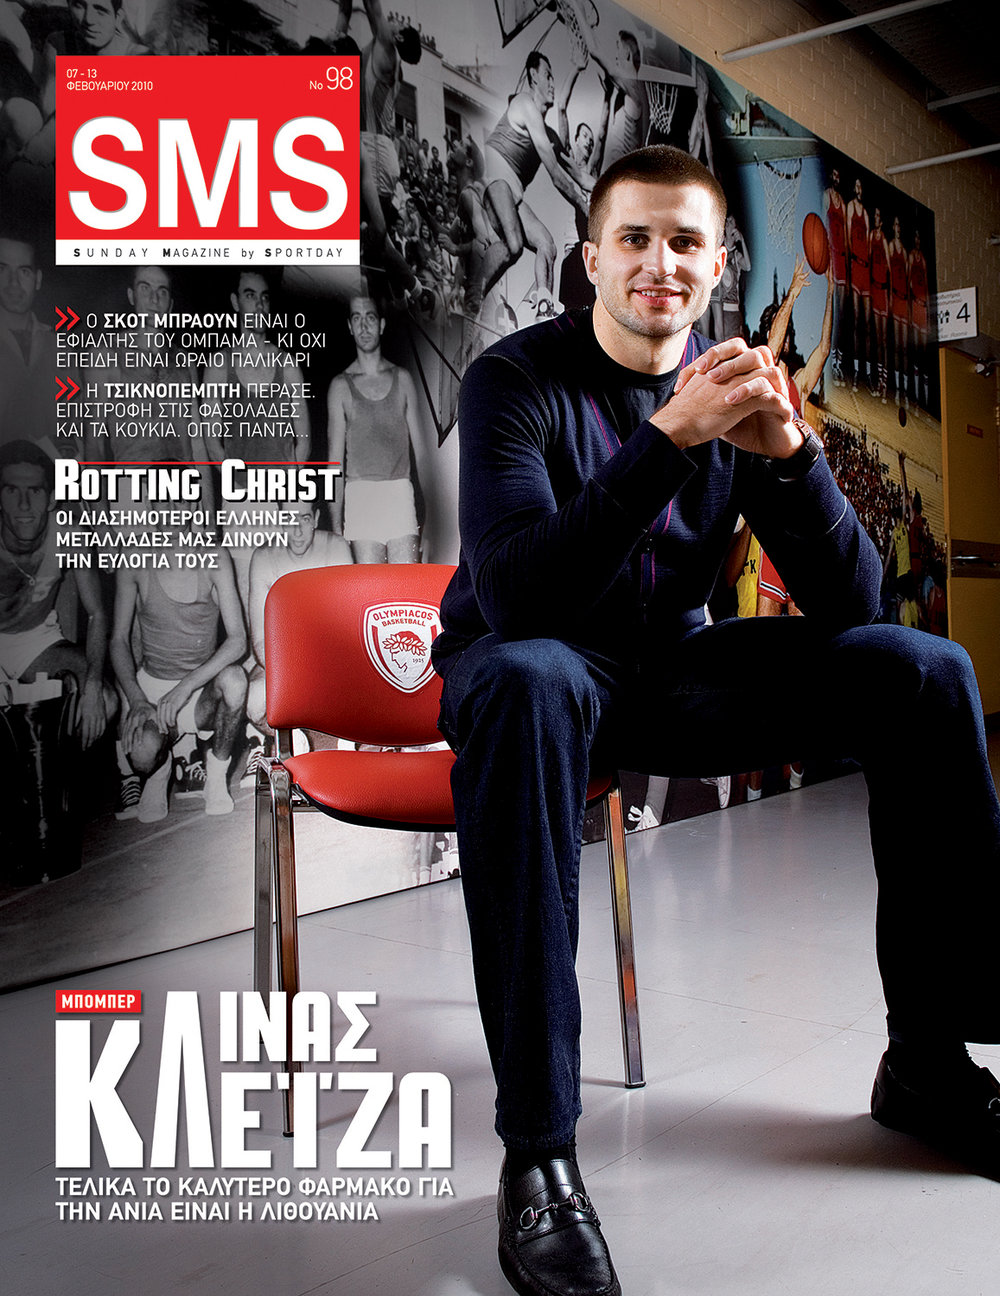 Linas Kleiza / basketball player / SMS Sportday No 98